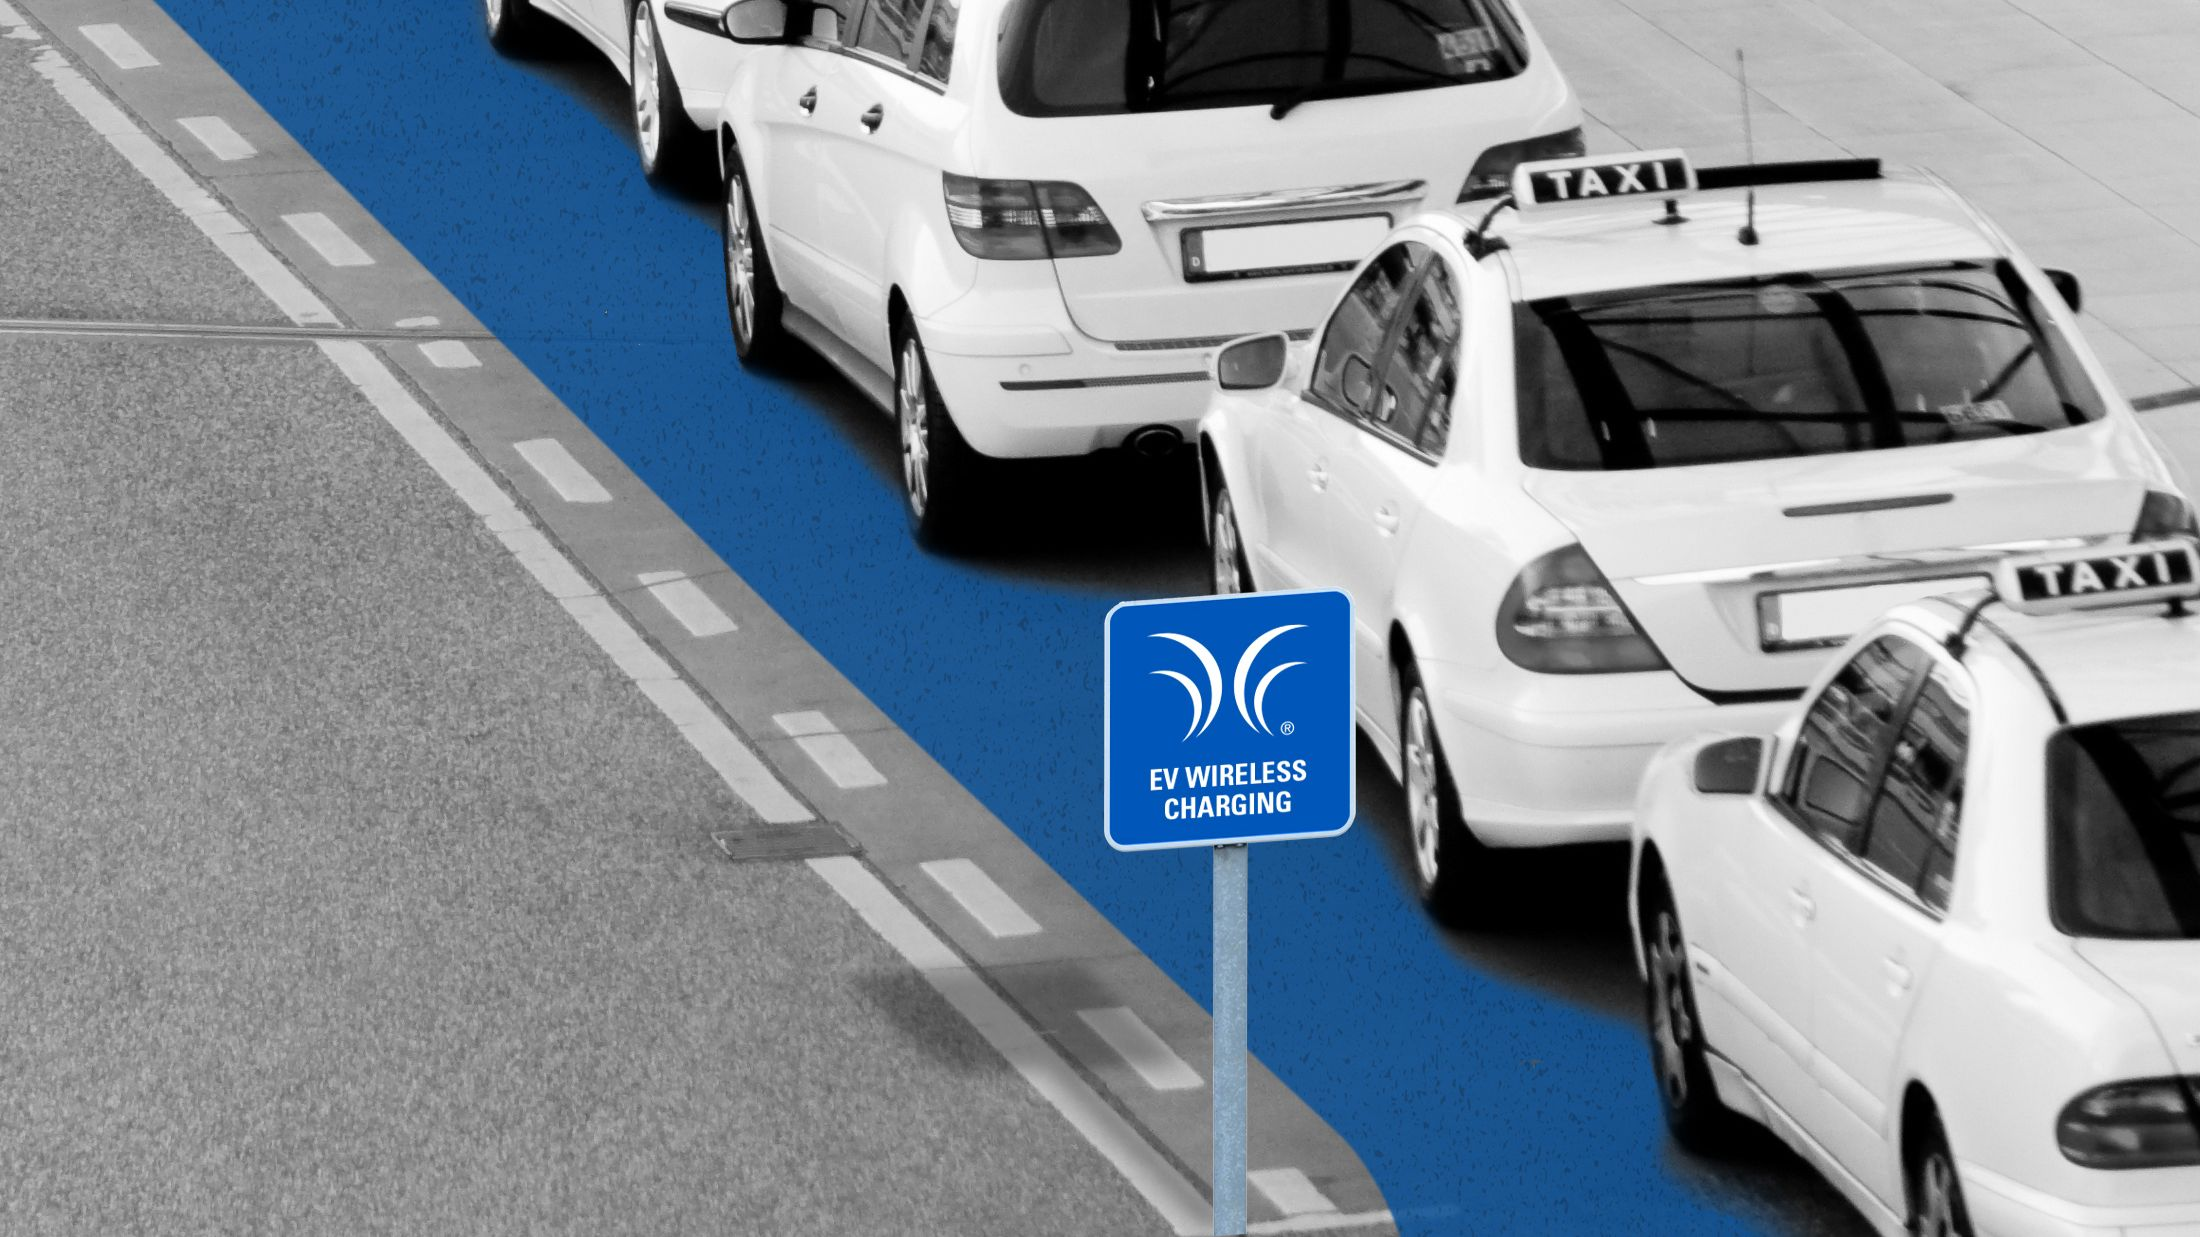 Eventually, its technology could be used to electrify a stretch of road—for example, under a taxi queue.